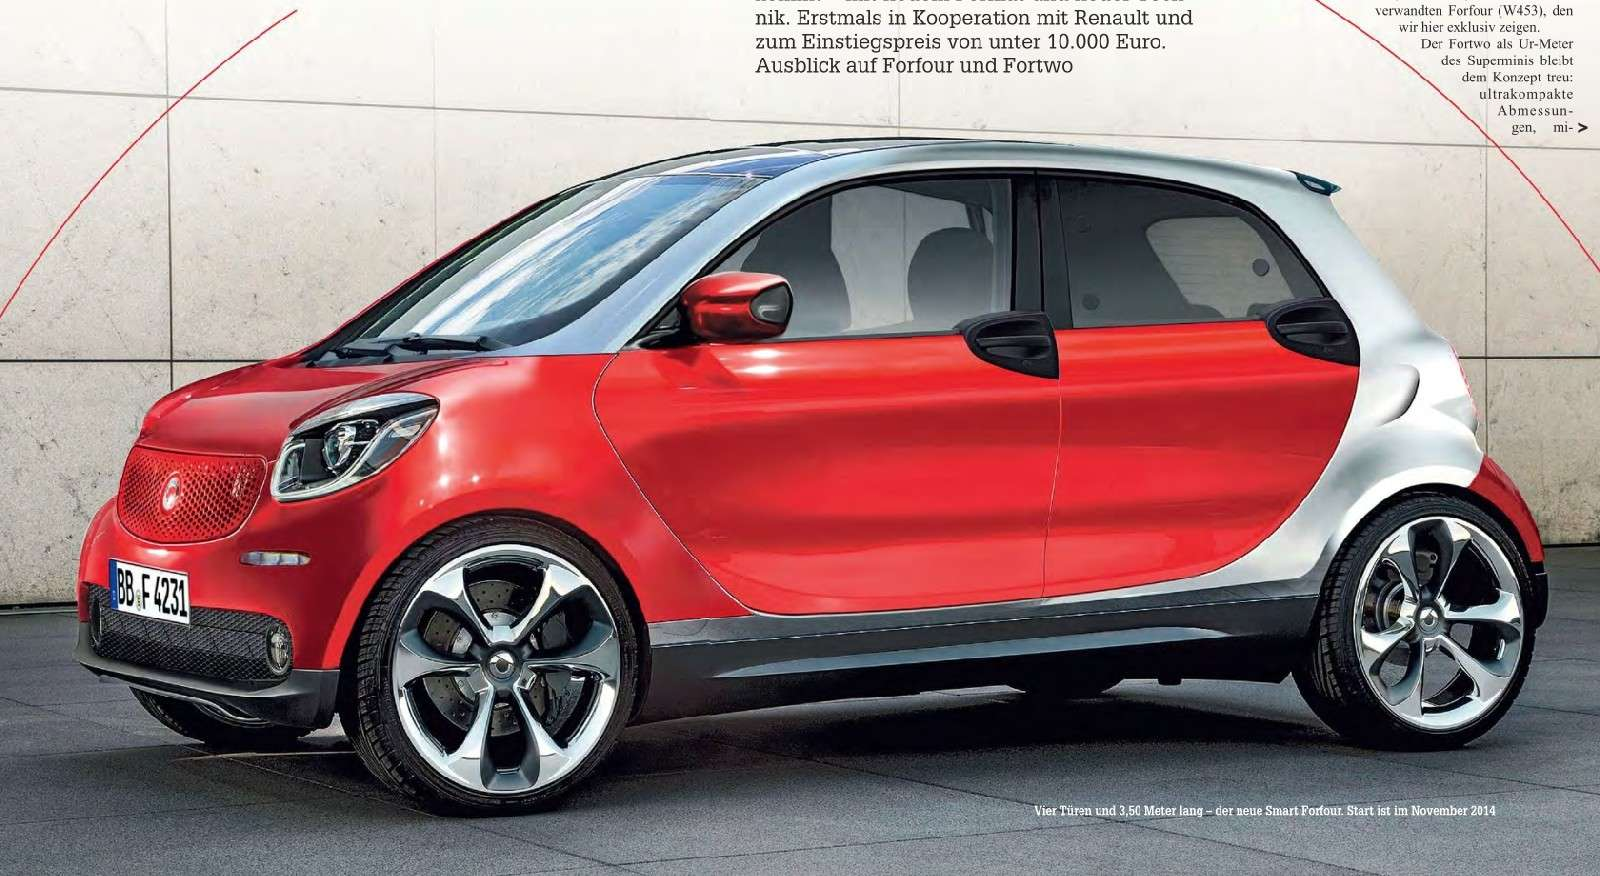 2014 - [Smart] Forfour [W453] - Page 5 Smart10